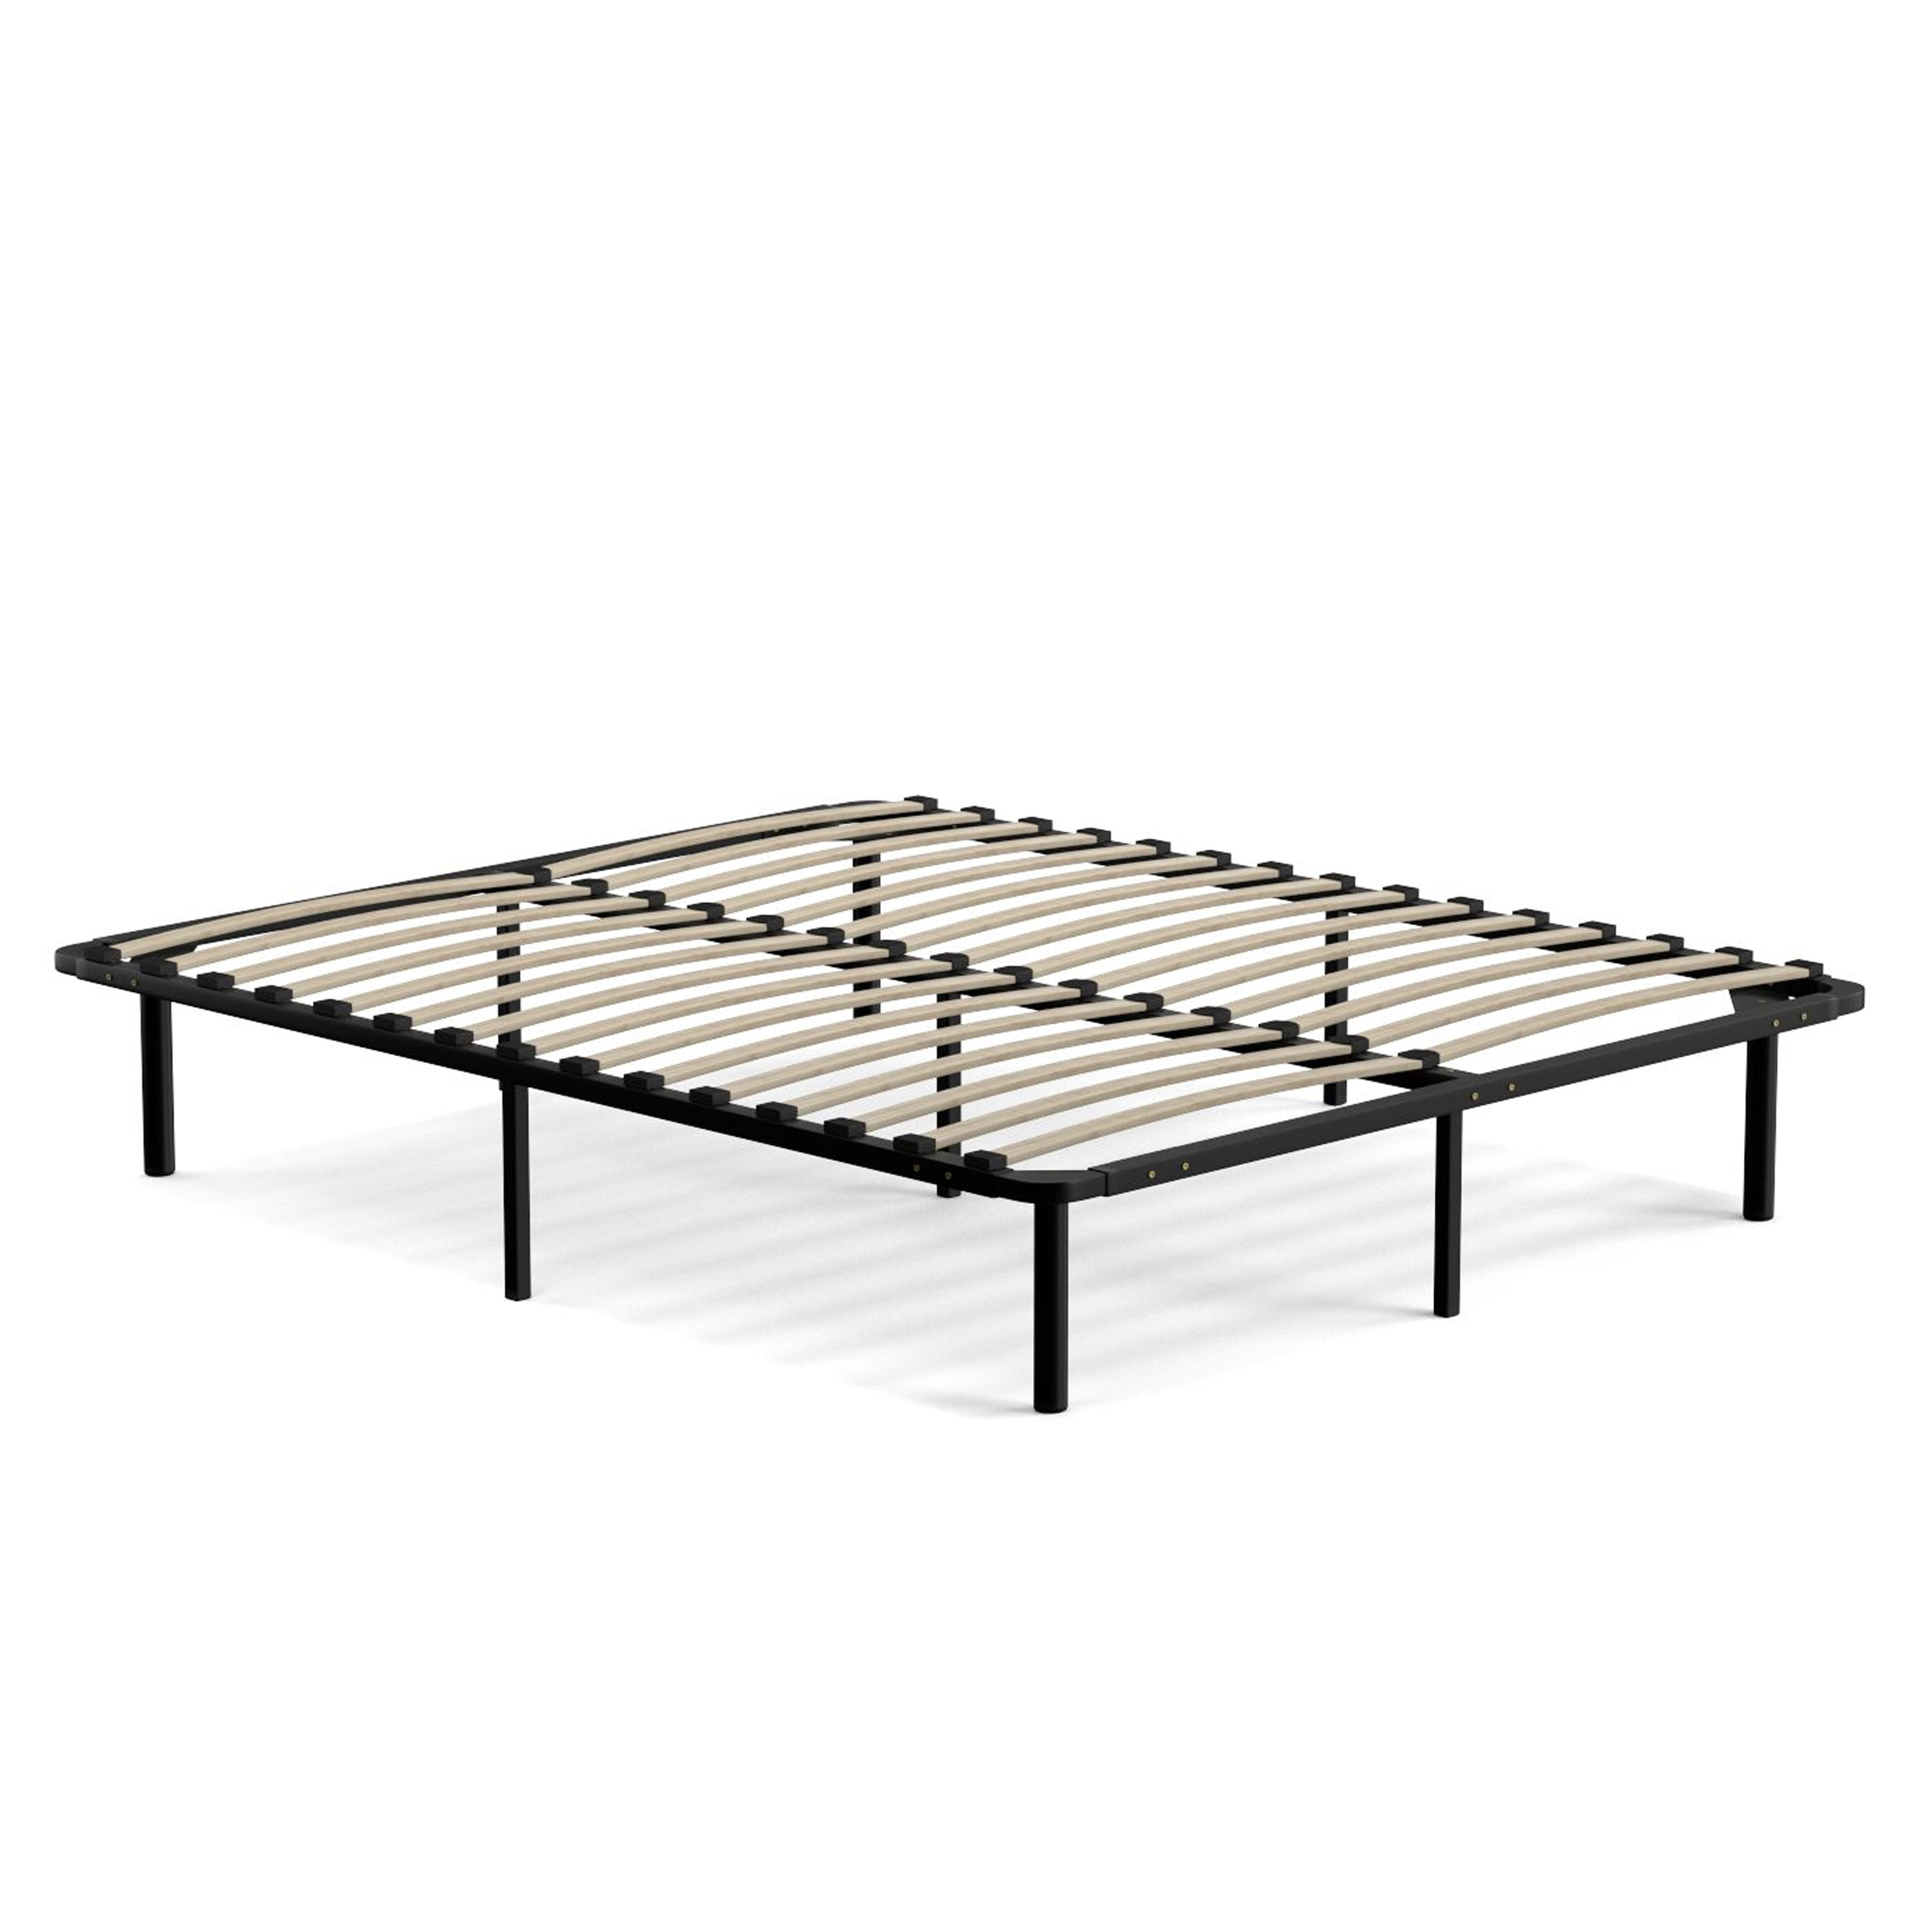 handy living queen size wood slat bed frame free shipping today overstockcom 18932176 - Wood Slat Bed Frame Queen